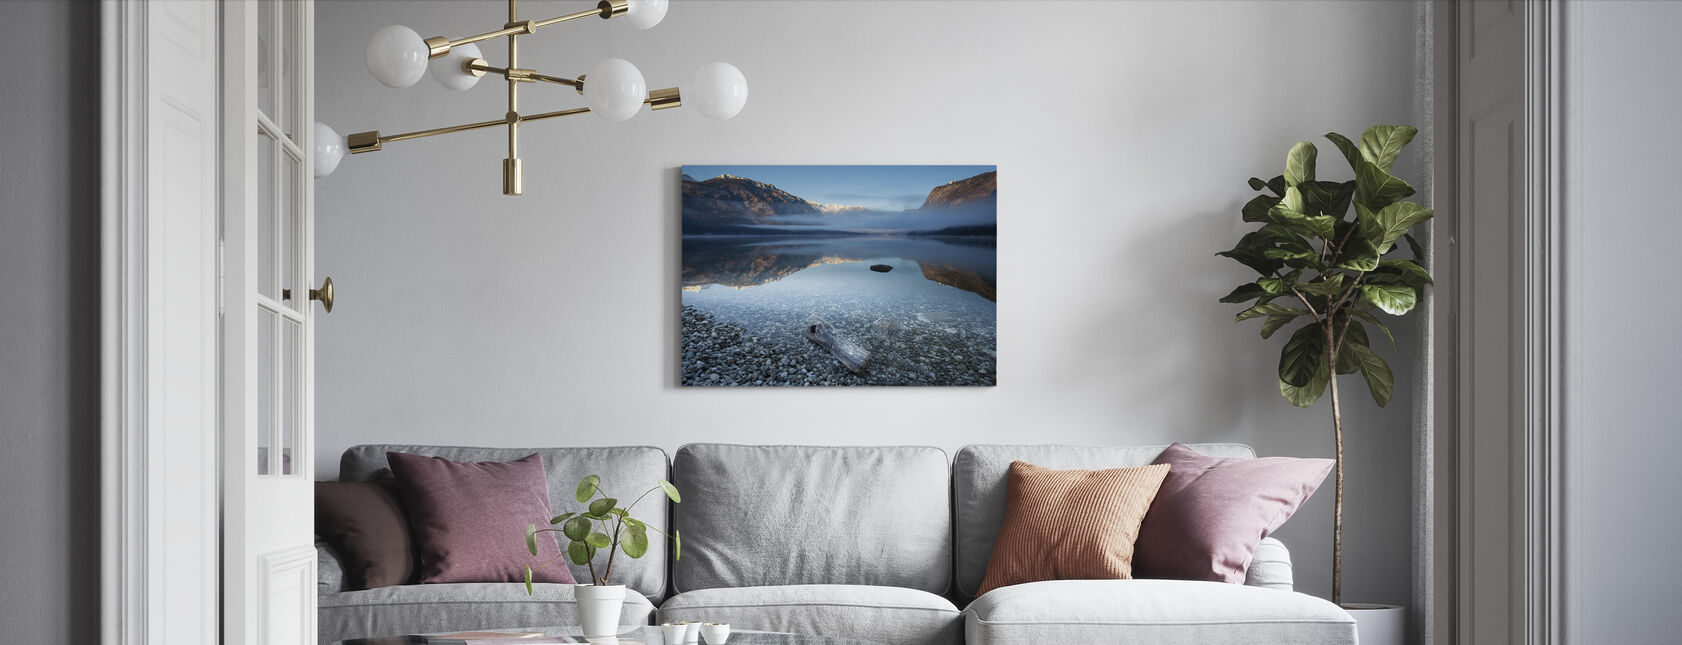 Bohinj's Tranquility - Canvas print - Living Room